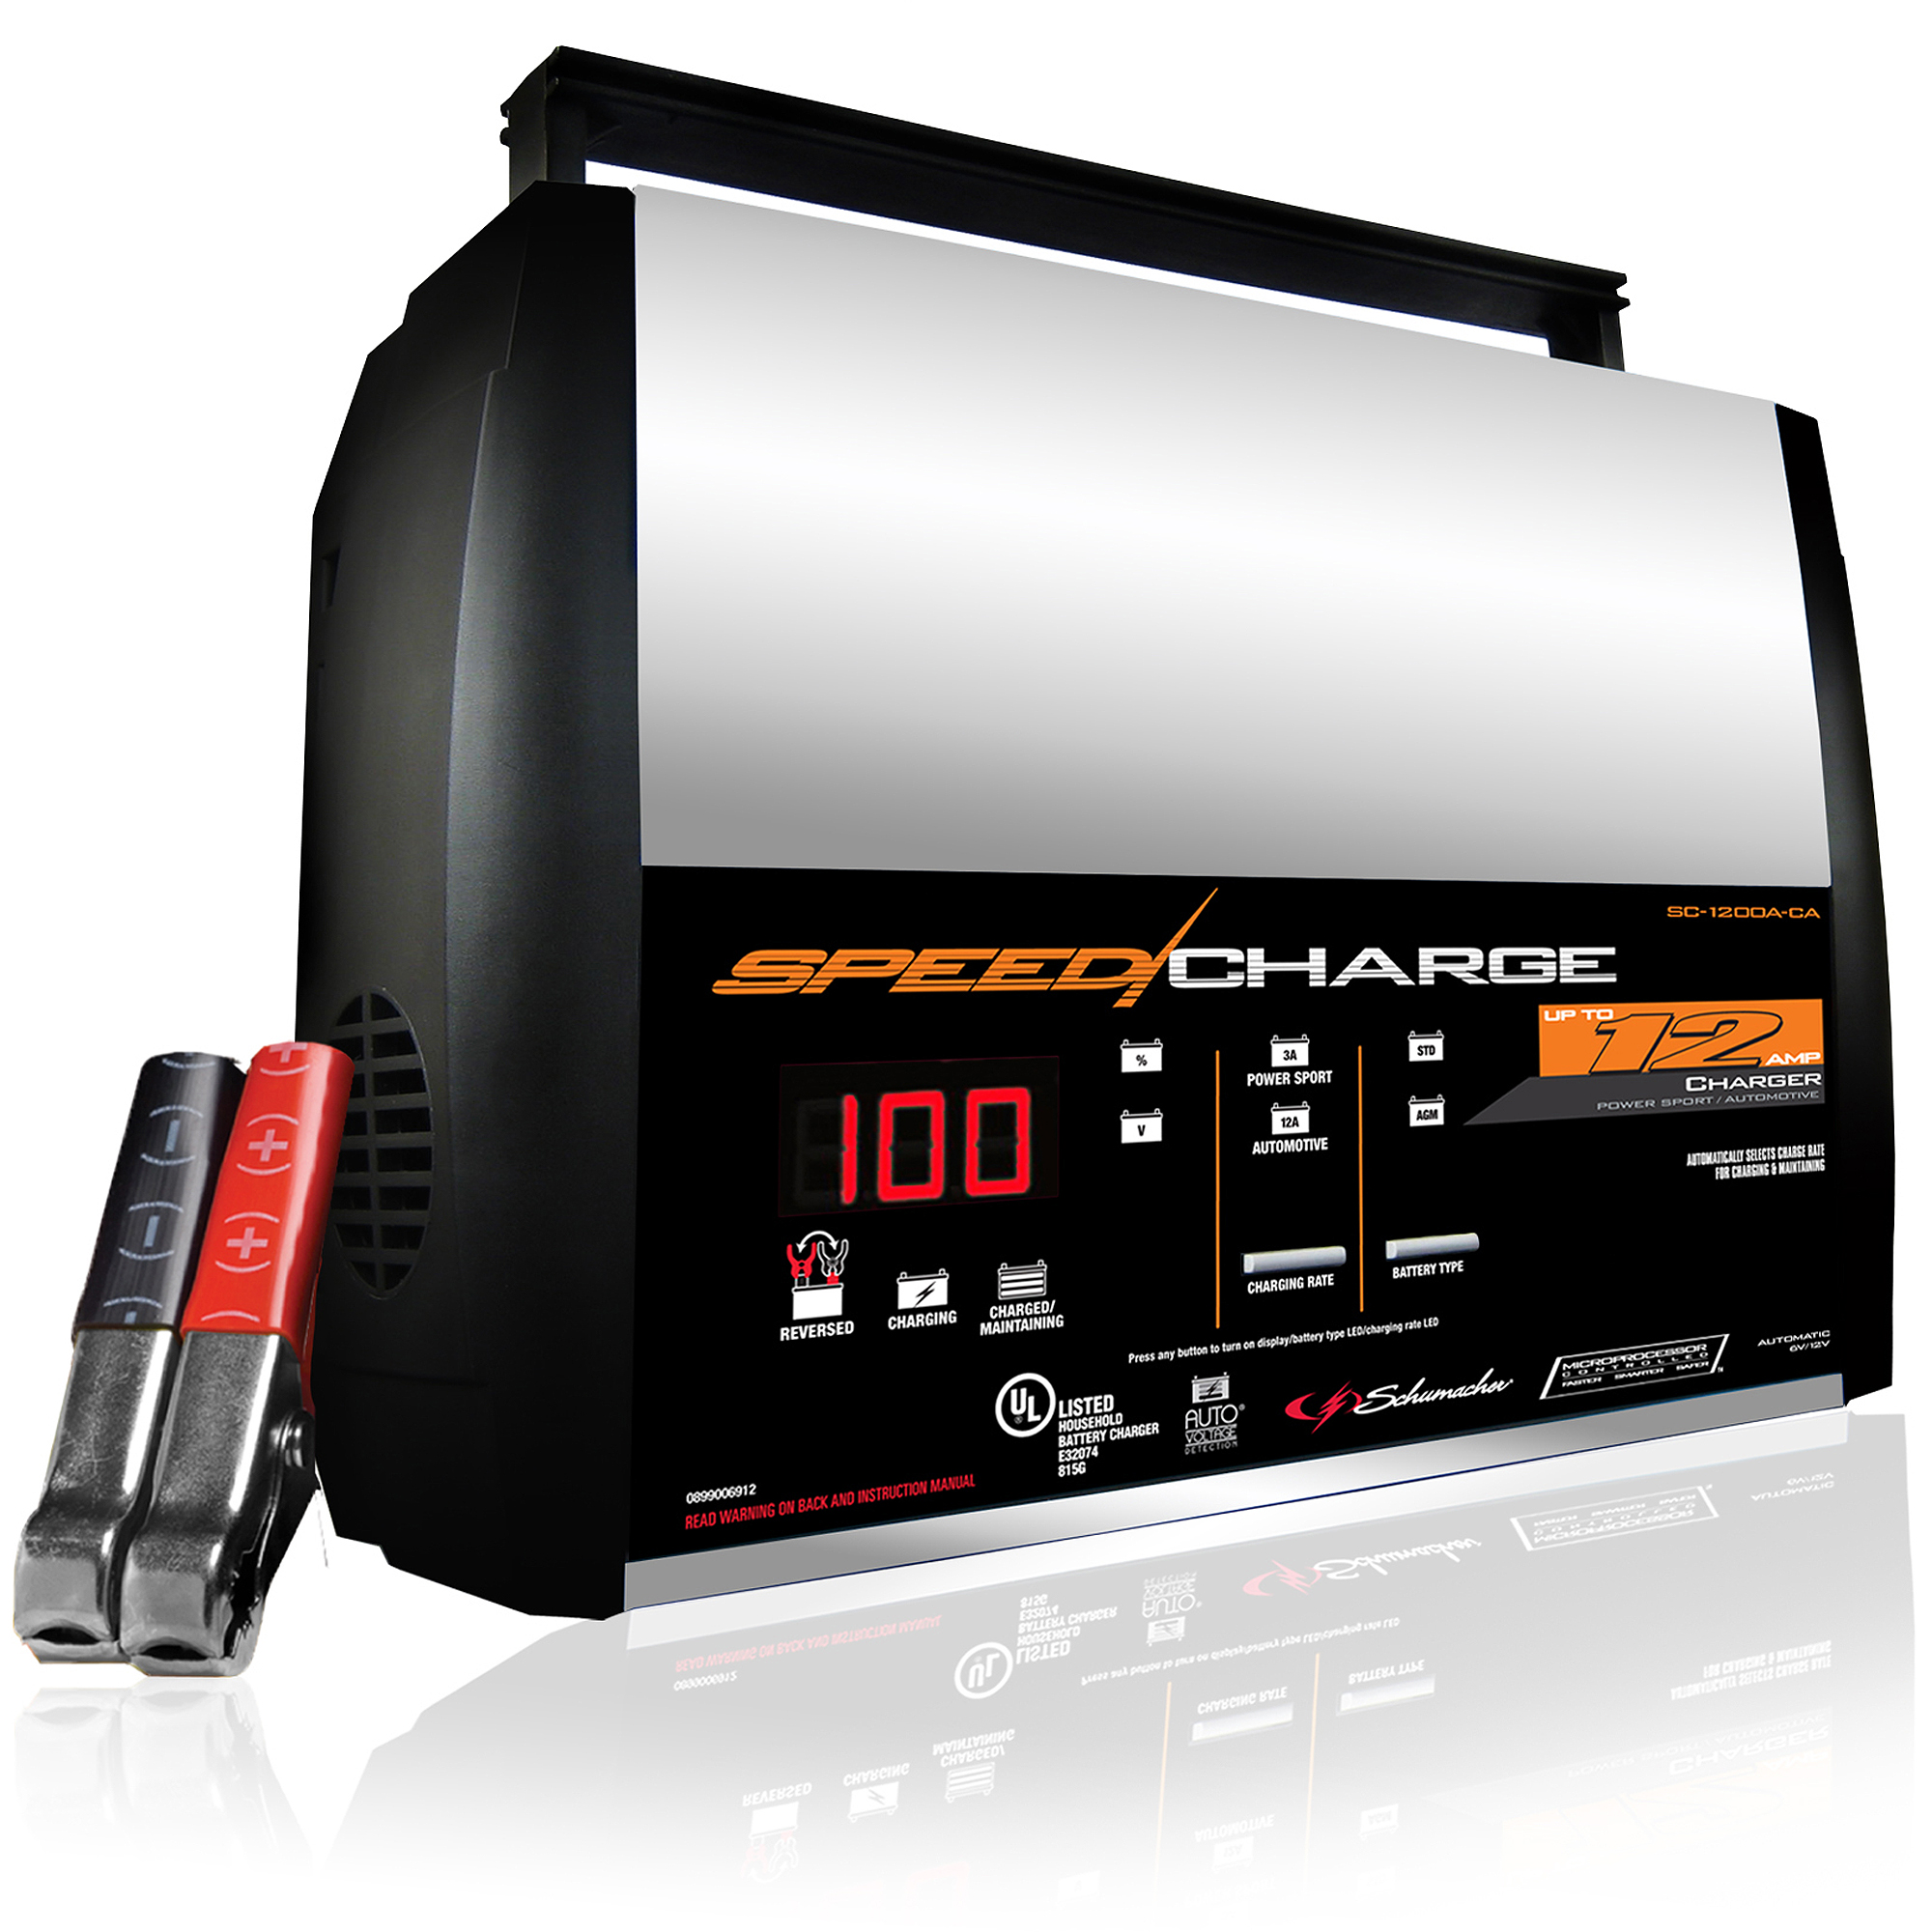 Battery Charger Auto Best Photos Simpleautomaticbatterychargercircuit Schuher Sdcharge 12 8 2